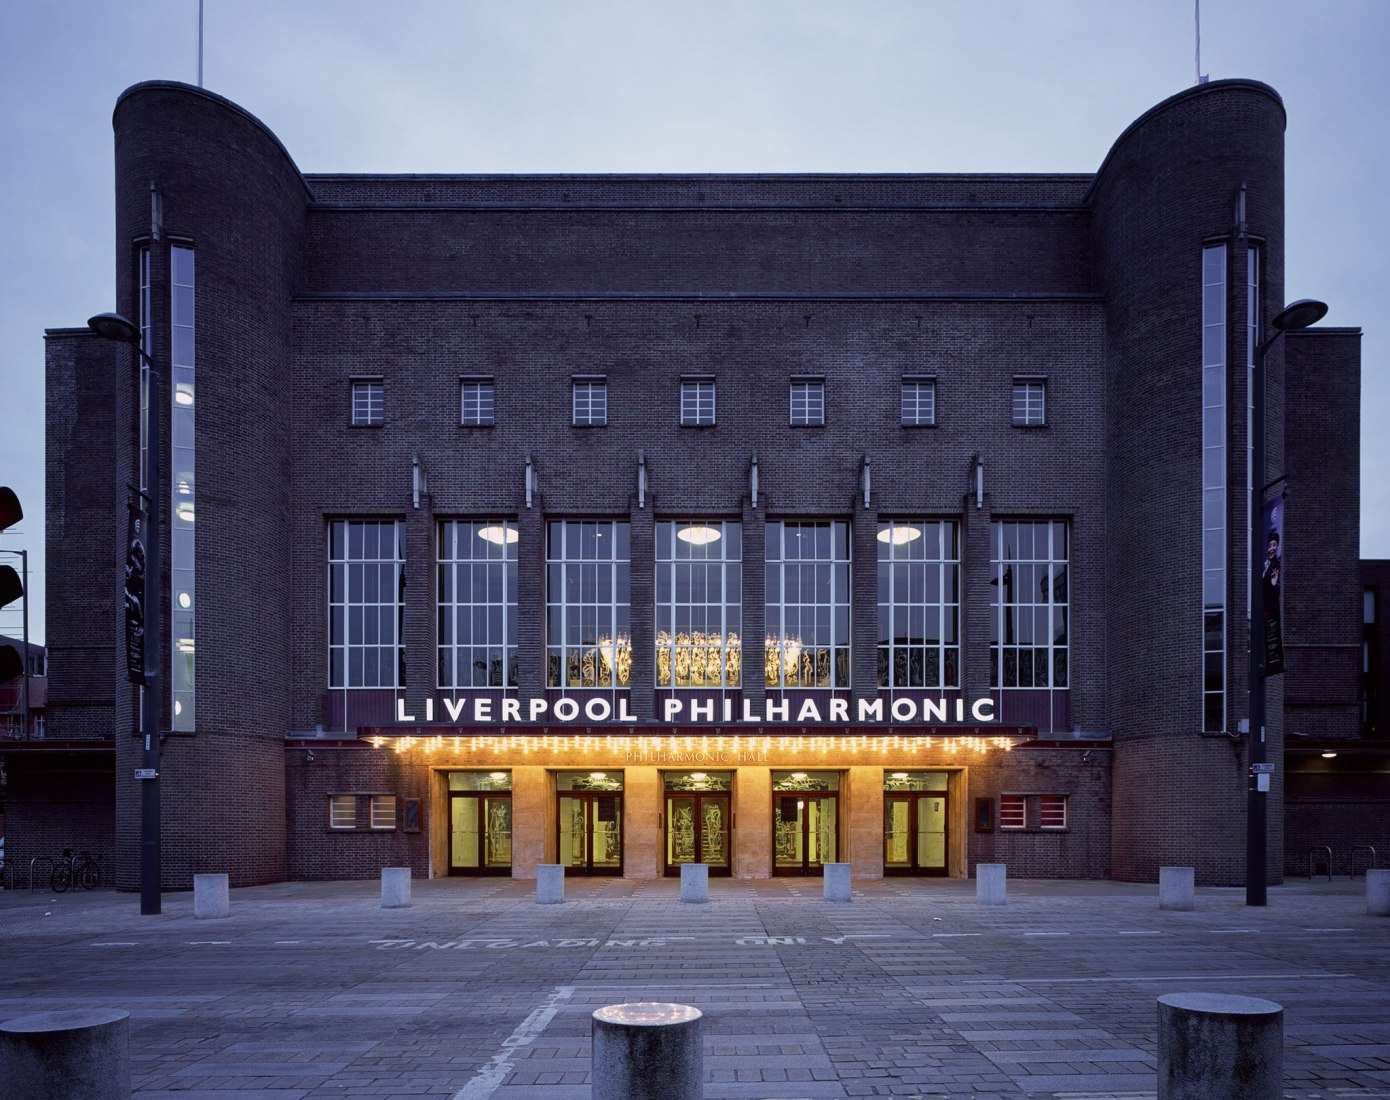 Exterior view. Liverpool Philharmonic Hall renovation by Caruso St John Architects. Photograph © Hélène Binet